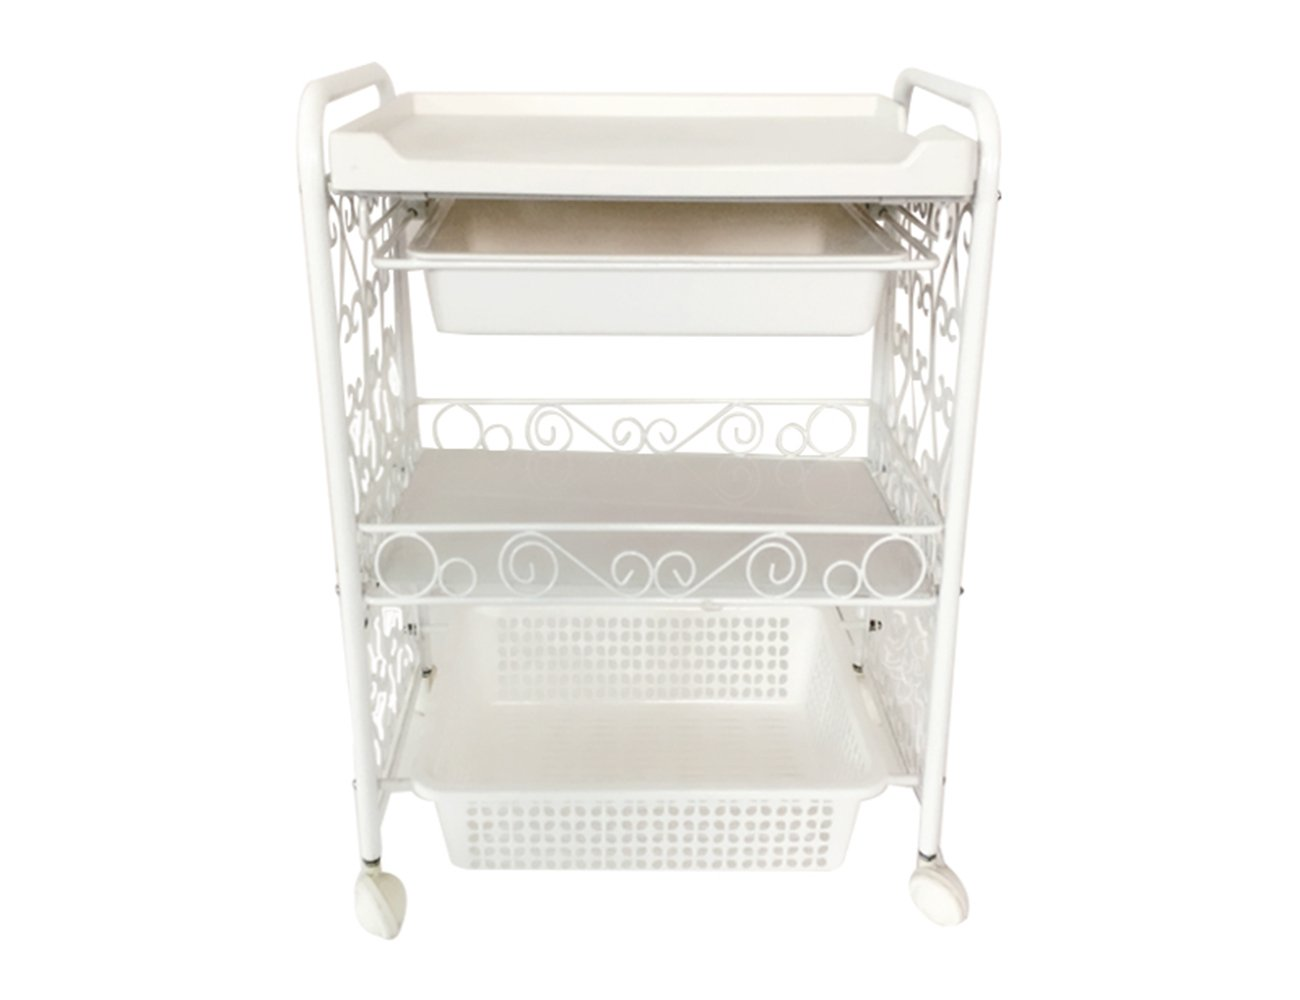 Stainless Steel Beauty Salon Rolling Trolley Storage Organizer White Cart 3 Tier With 2 Drawers Elitzia ETST20